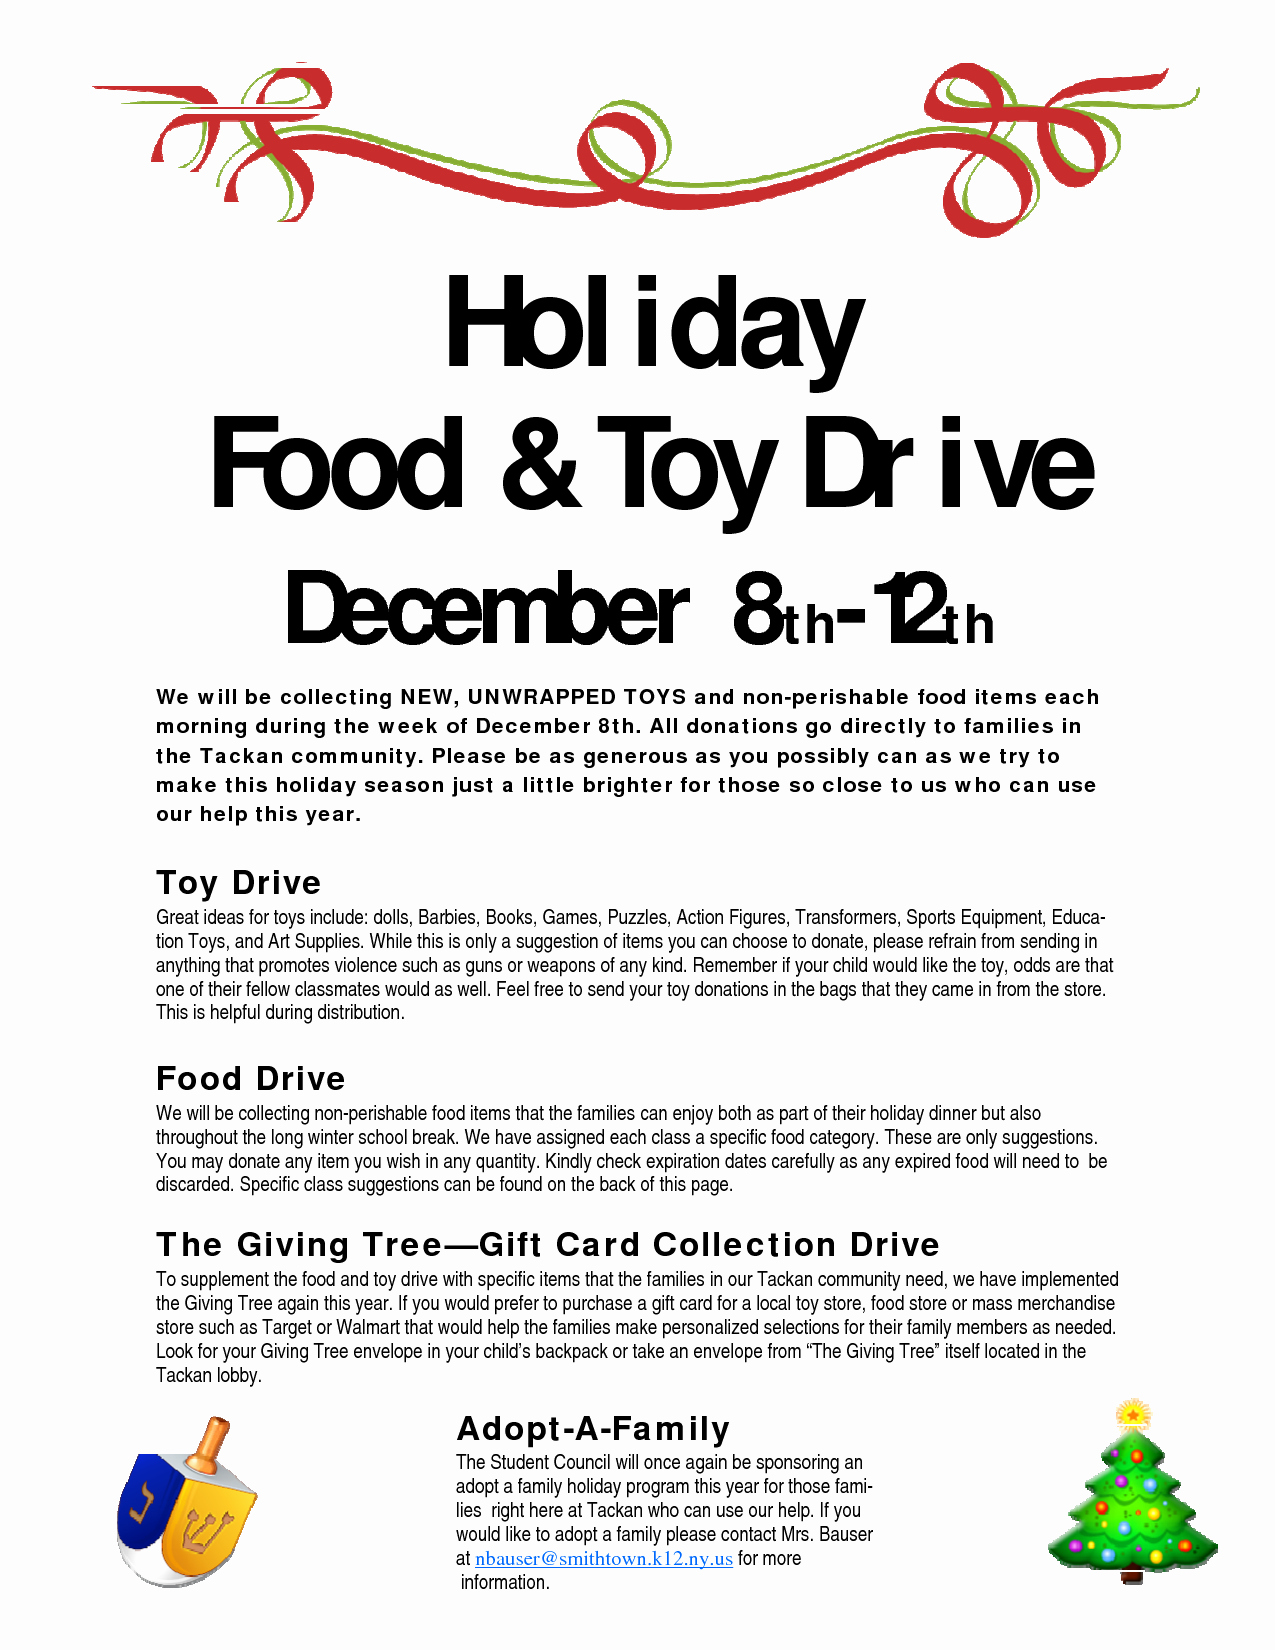 Food Drive Flyer Template Awesome 16 Food Drive Flyer Template Free Food Drive